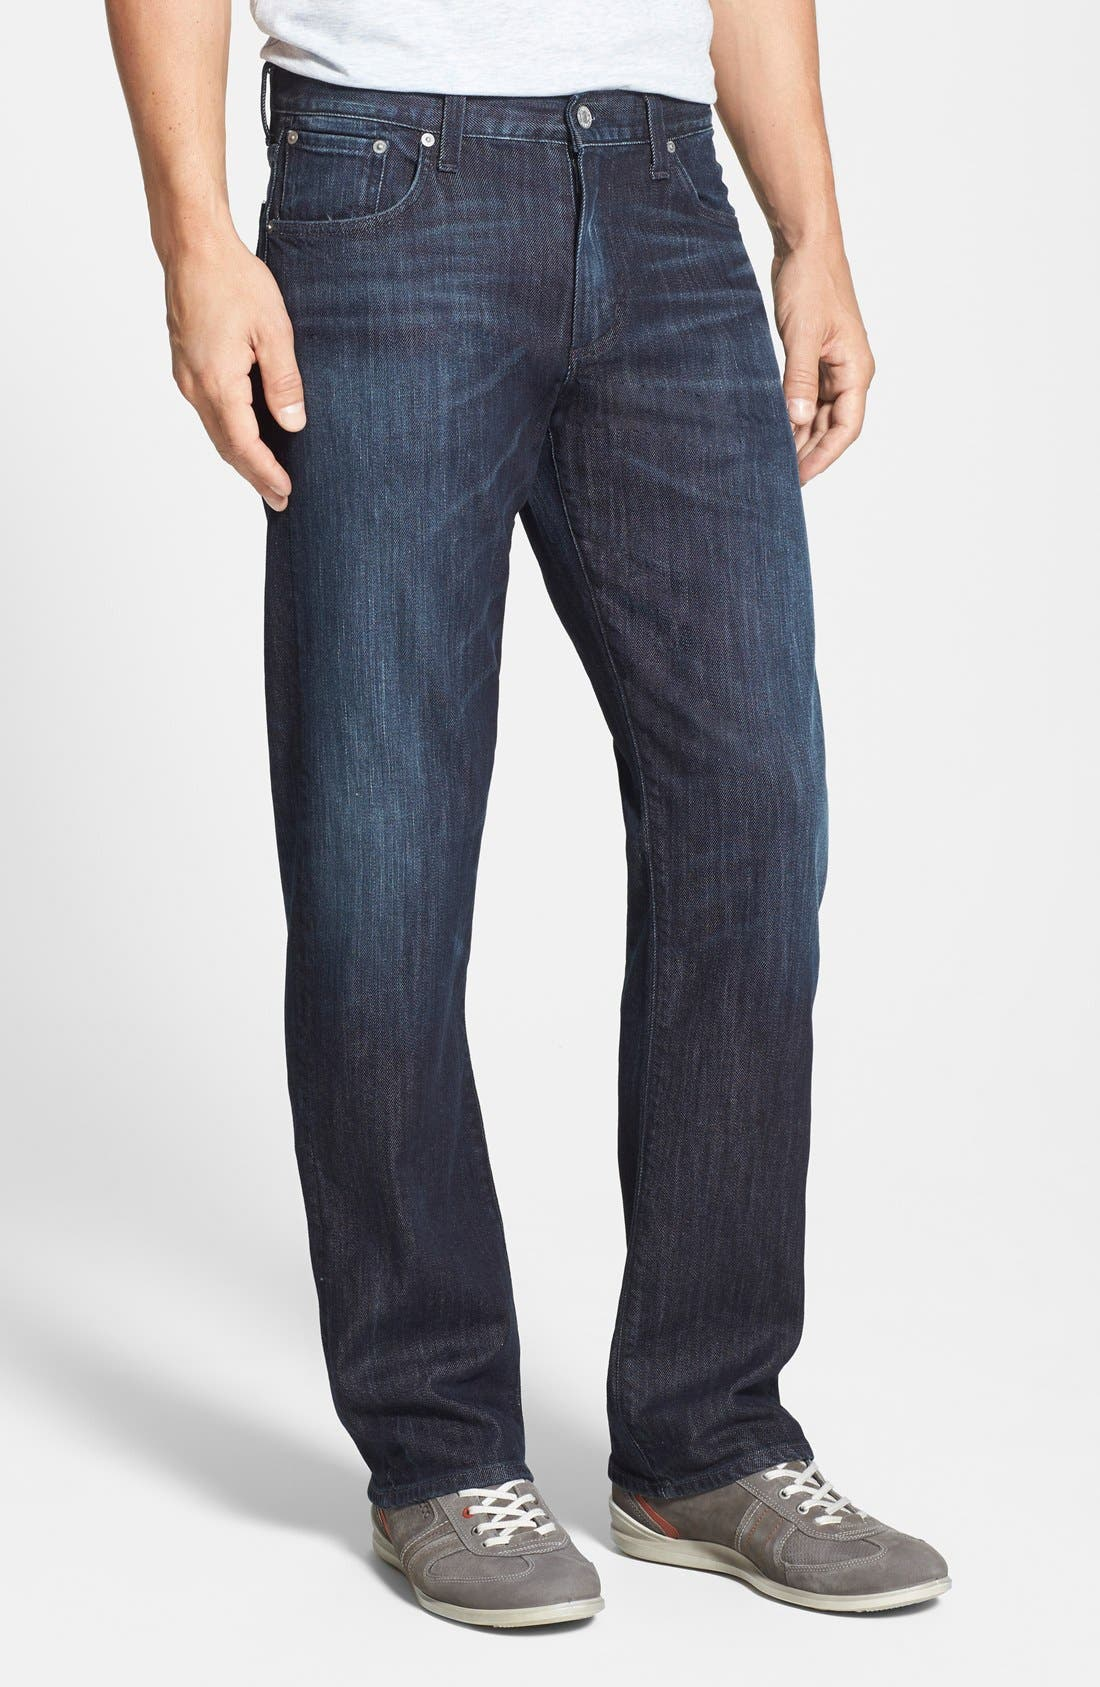 Main Image - Citizens of Humanity 'Evans' Relaxed Fit Jeans (Elko)